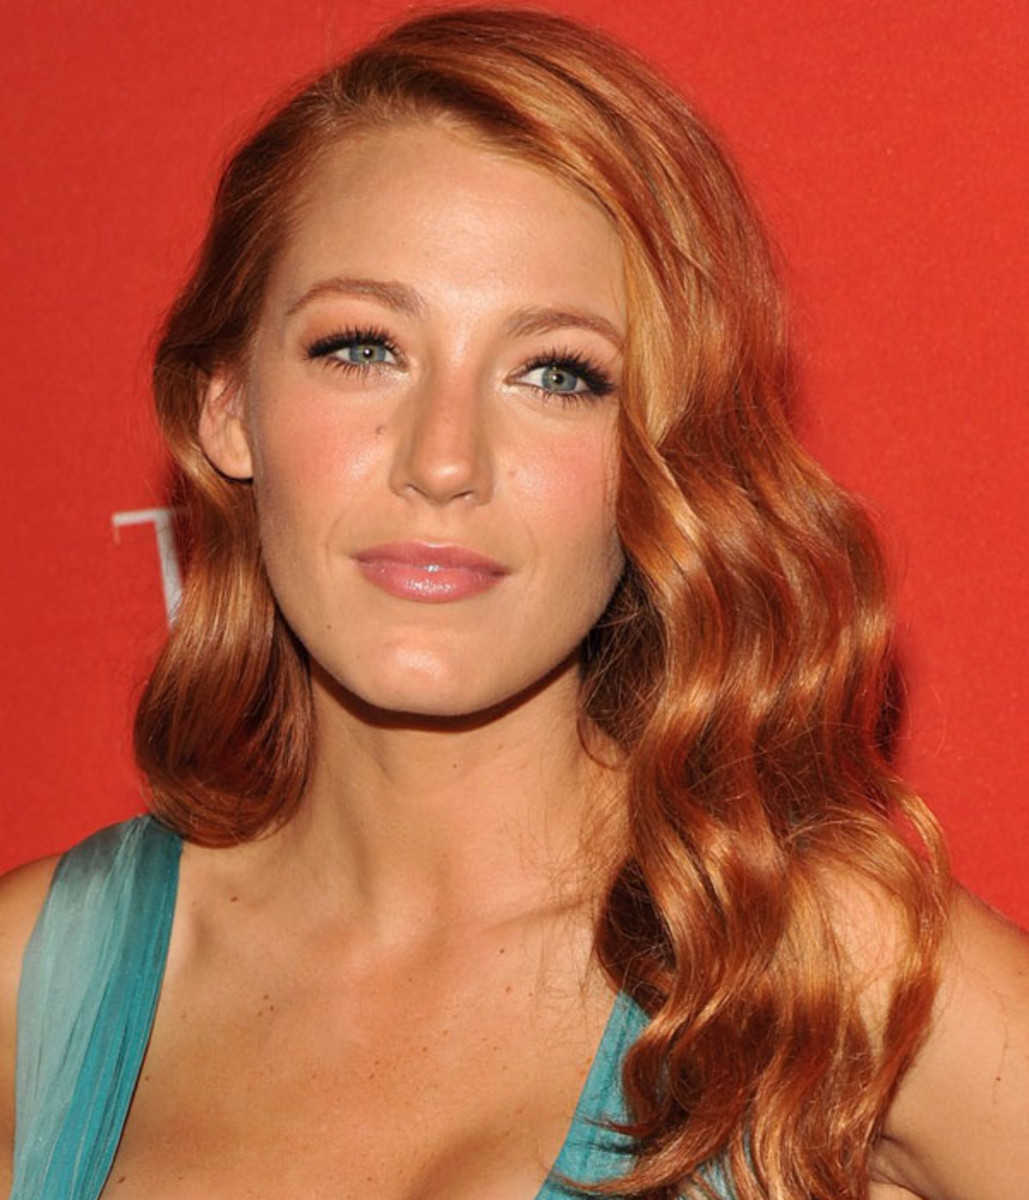 Blake-Lively-red-hair-2